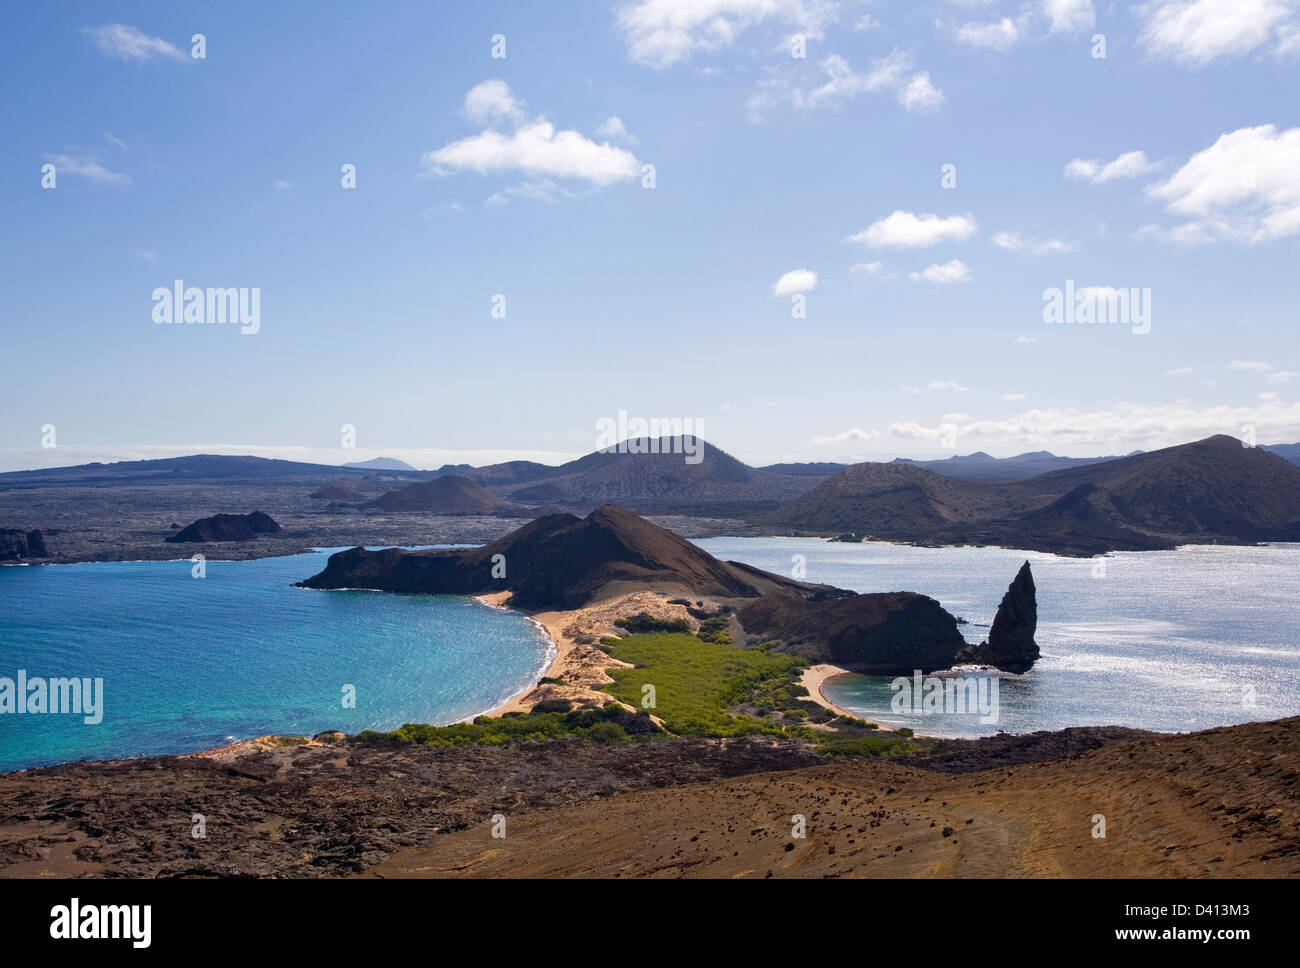 Ecuador, Galápagos Islands, Isla Bartolomé, view of the islands lava landscape towards neighboring Isla - Stock Image